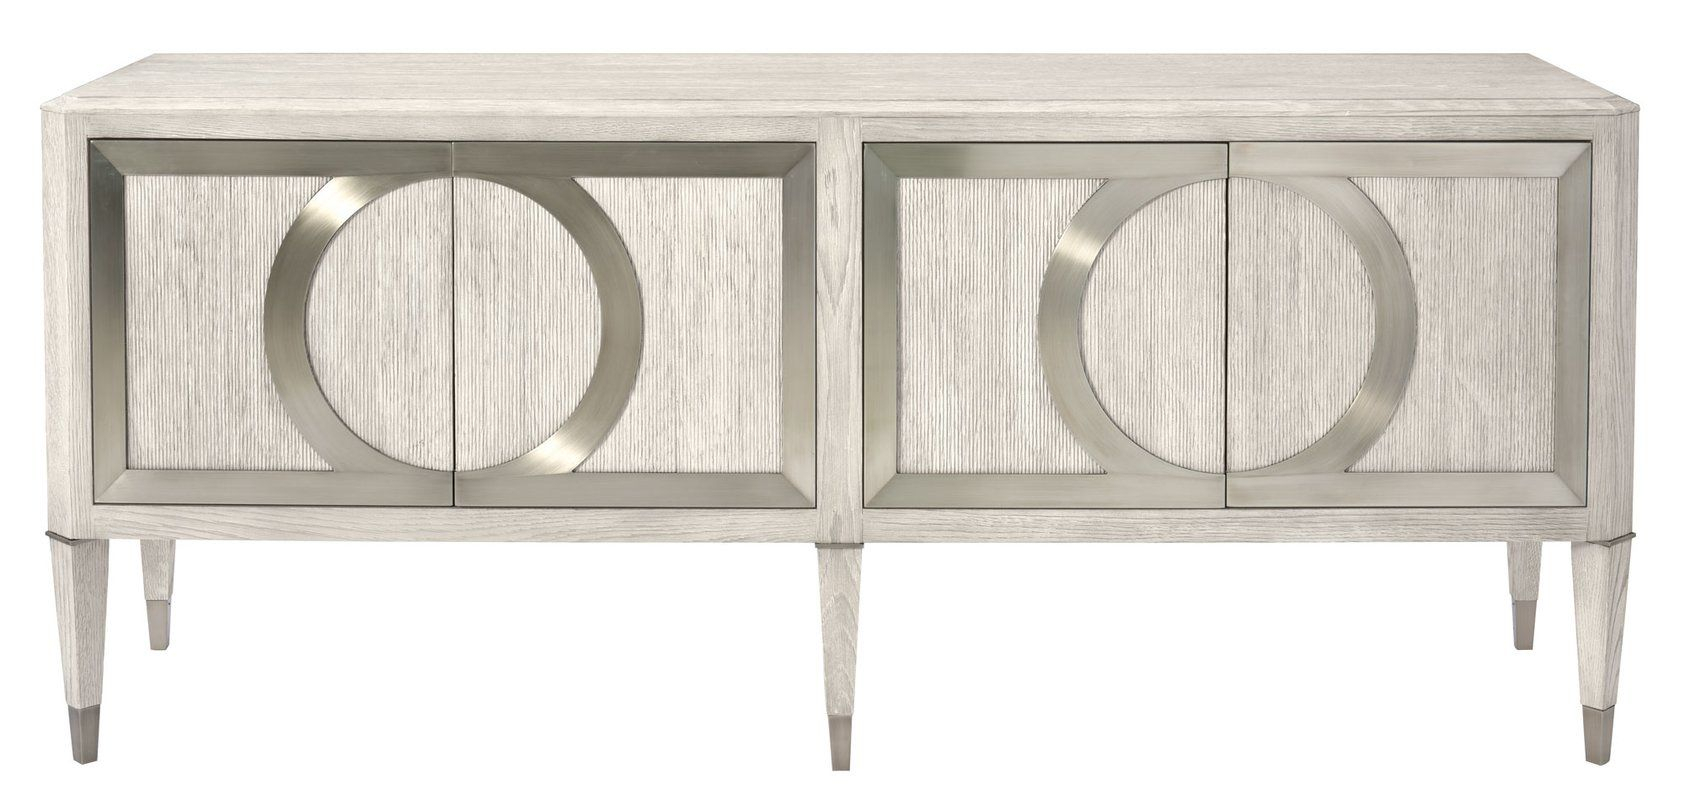 Domaine Tv Stand For Tvs Up To 78"